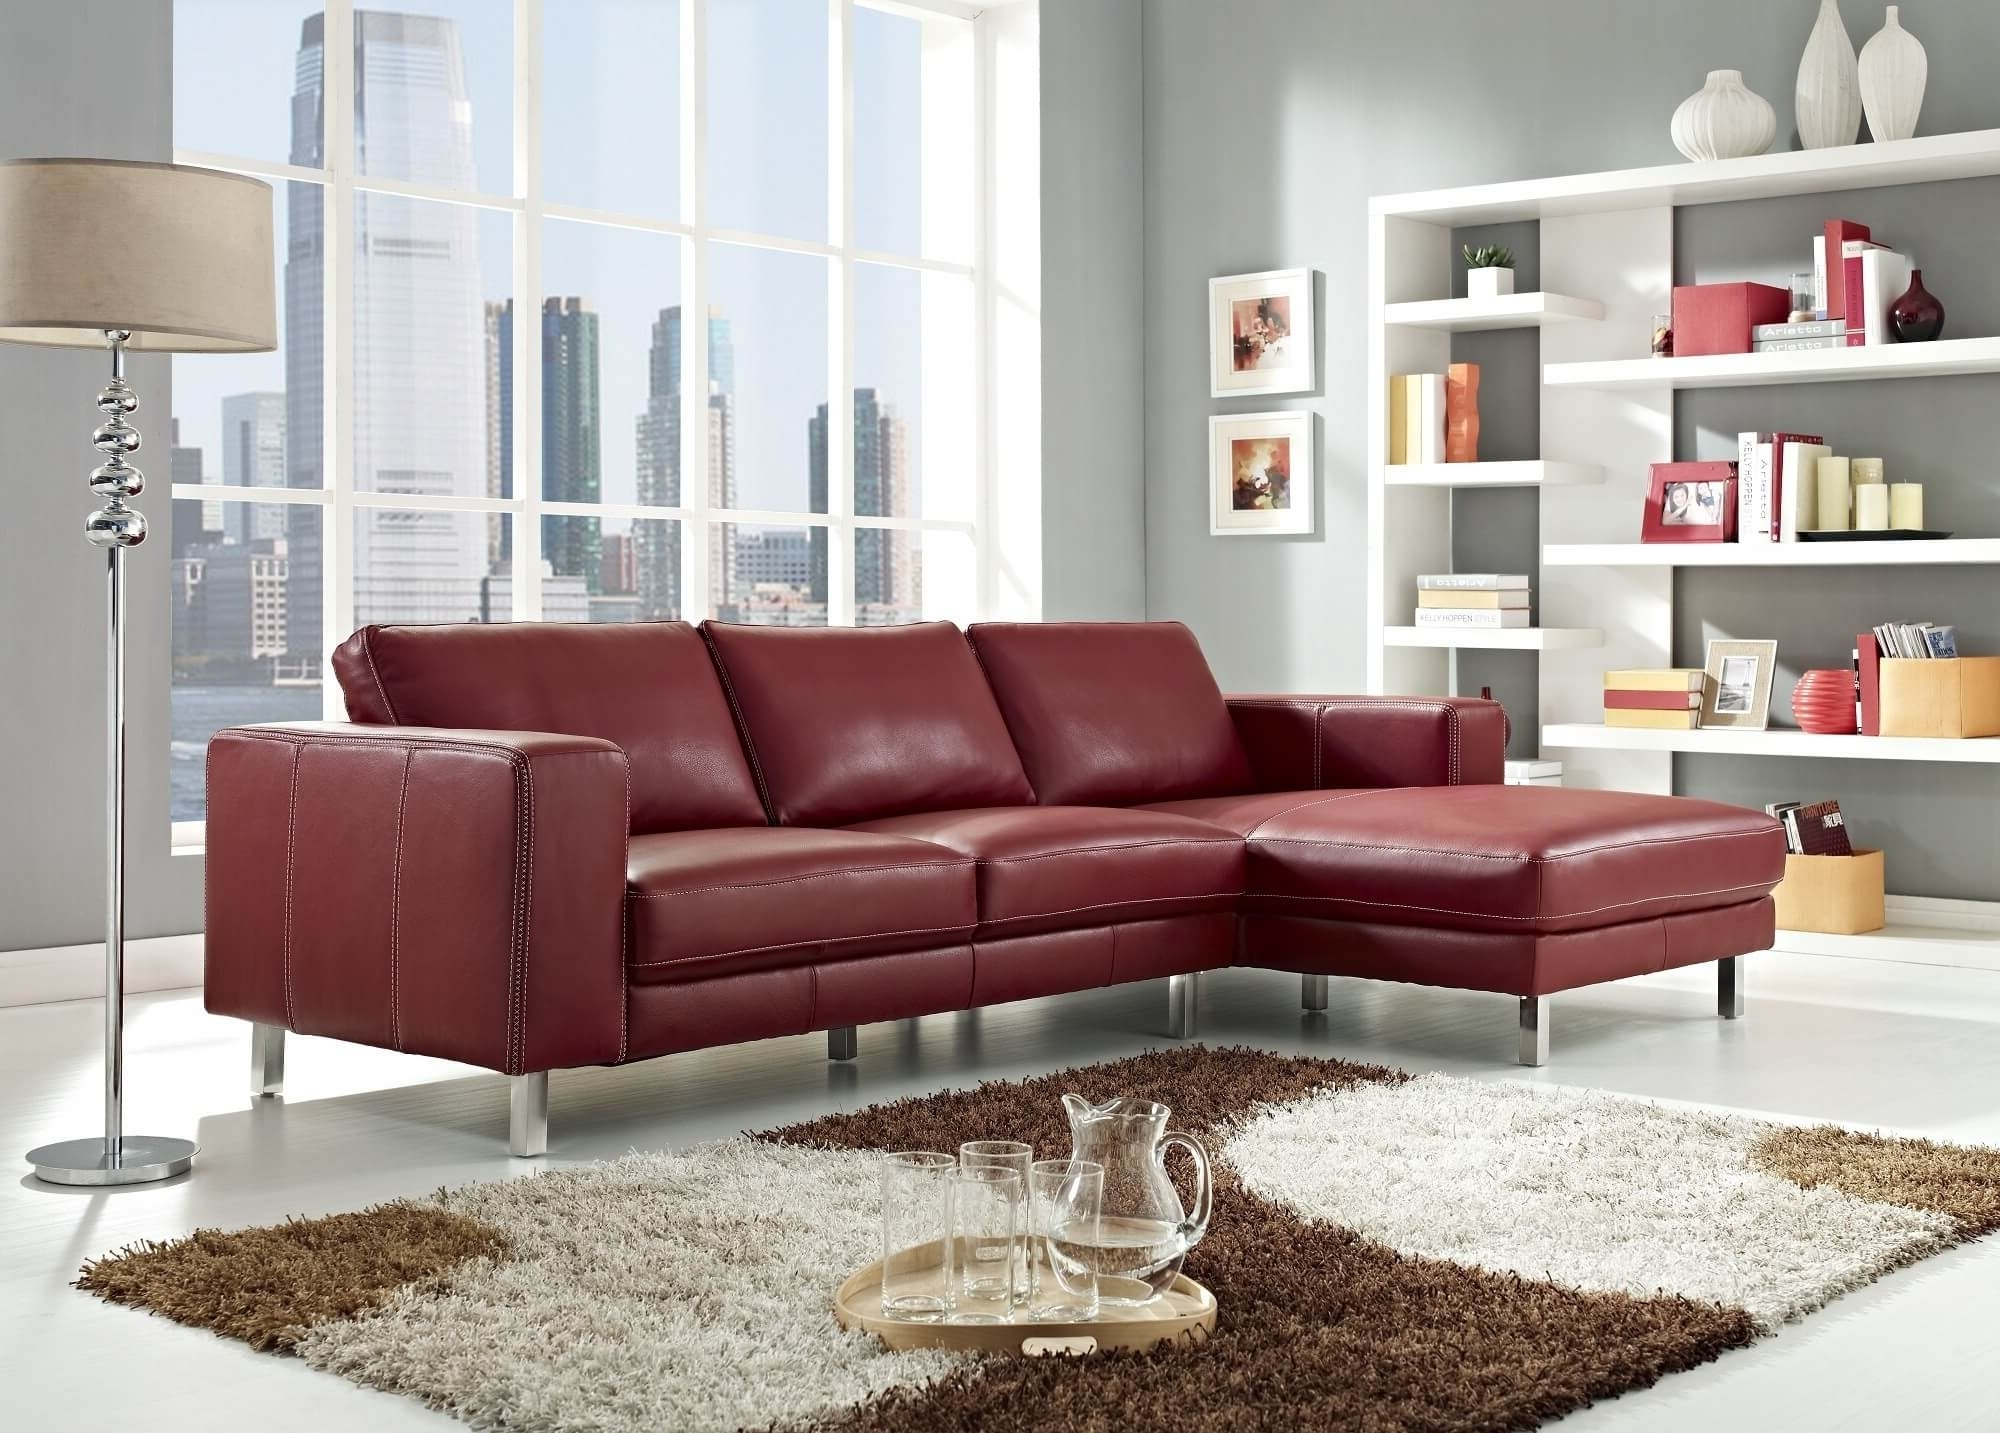 2017 Stylish Modern Red Sectional Sofas In Small Red Leather Sectional Sofas (View 8 of 15)